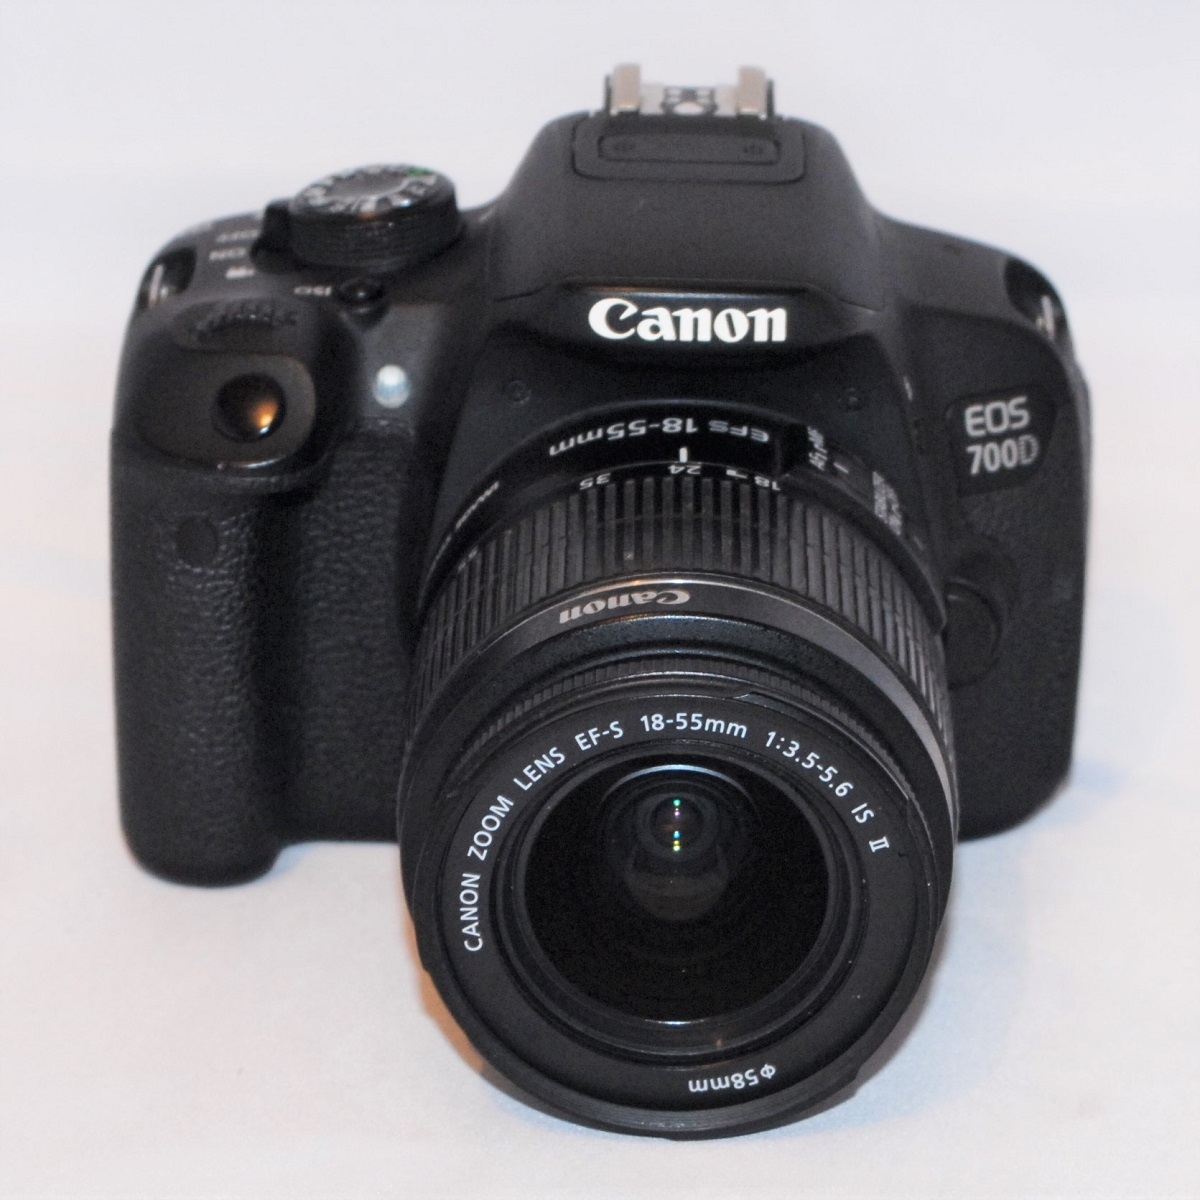 Canon EOS 700D +18-55mm f3.5-f.6 IS MkII. Excellent condition. SOLD